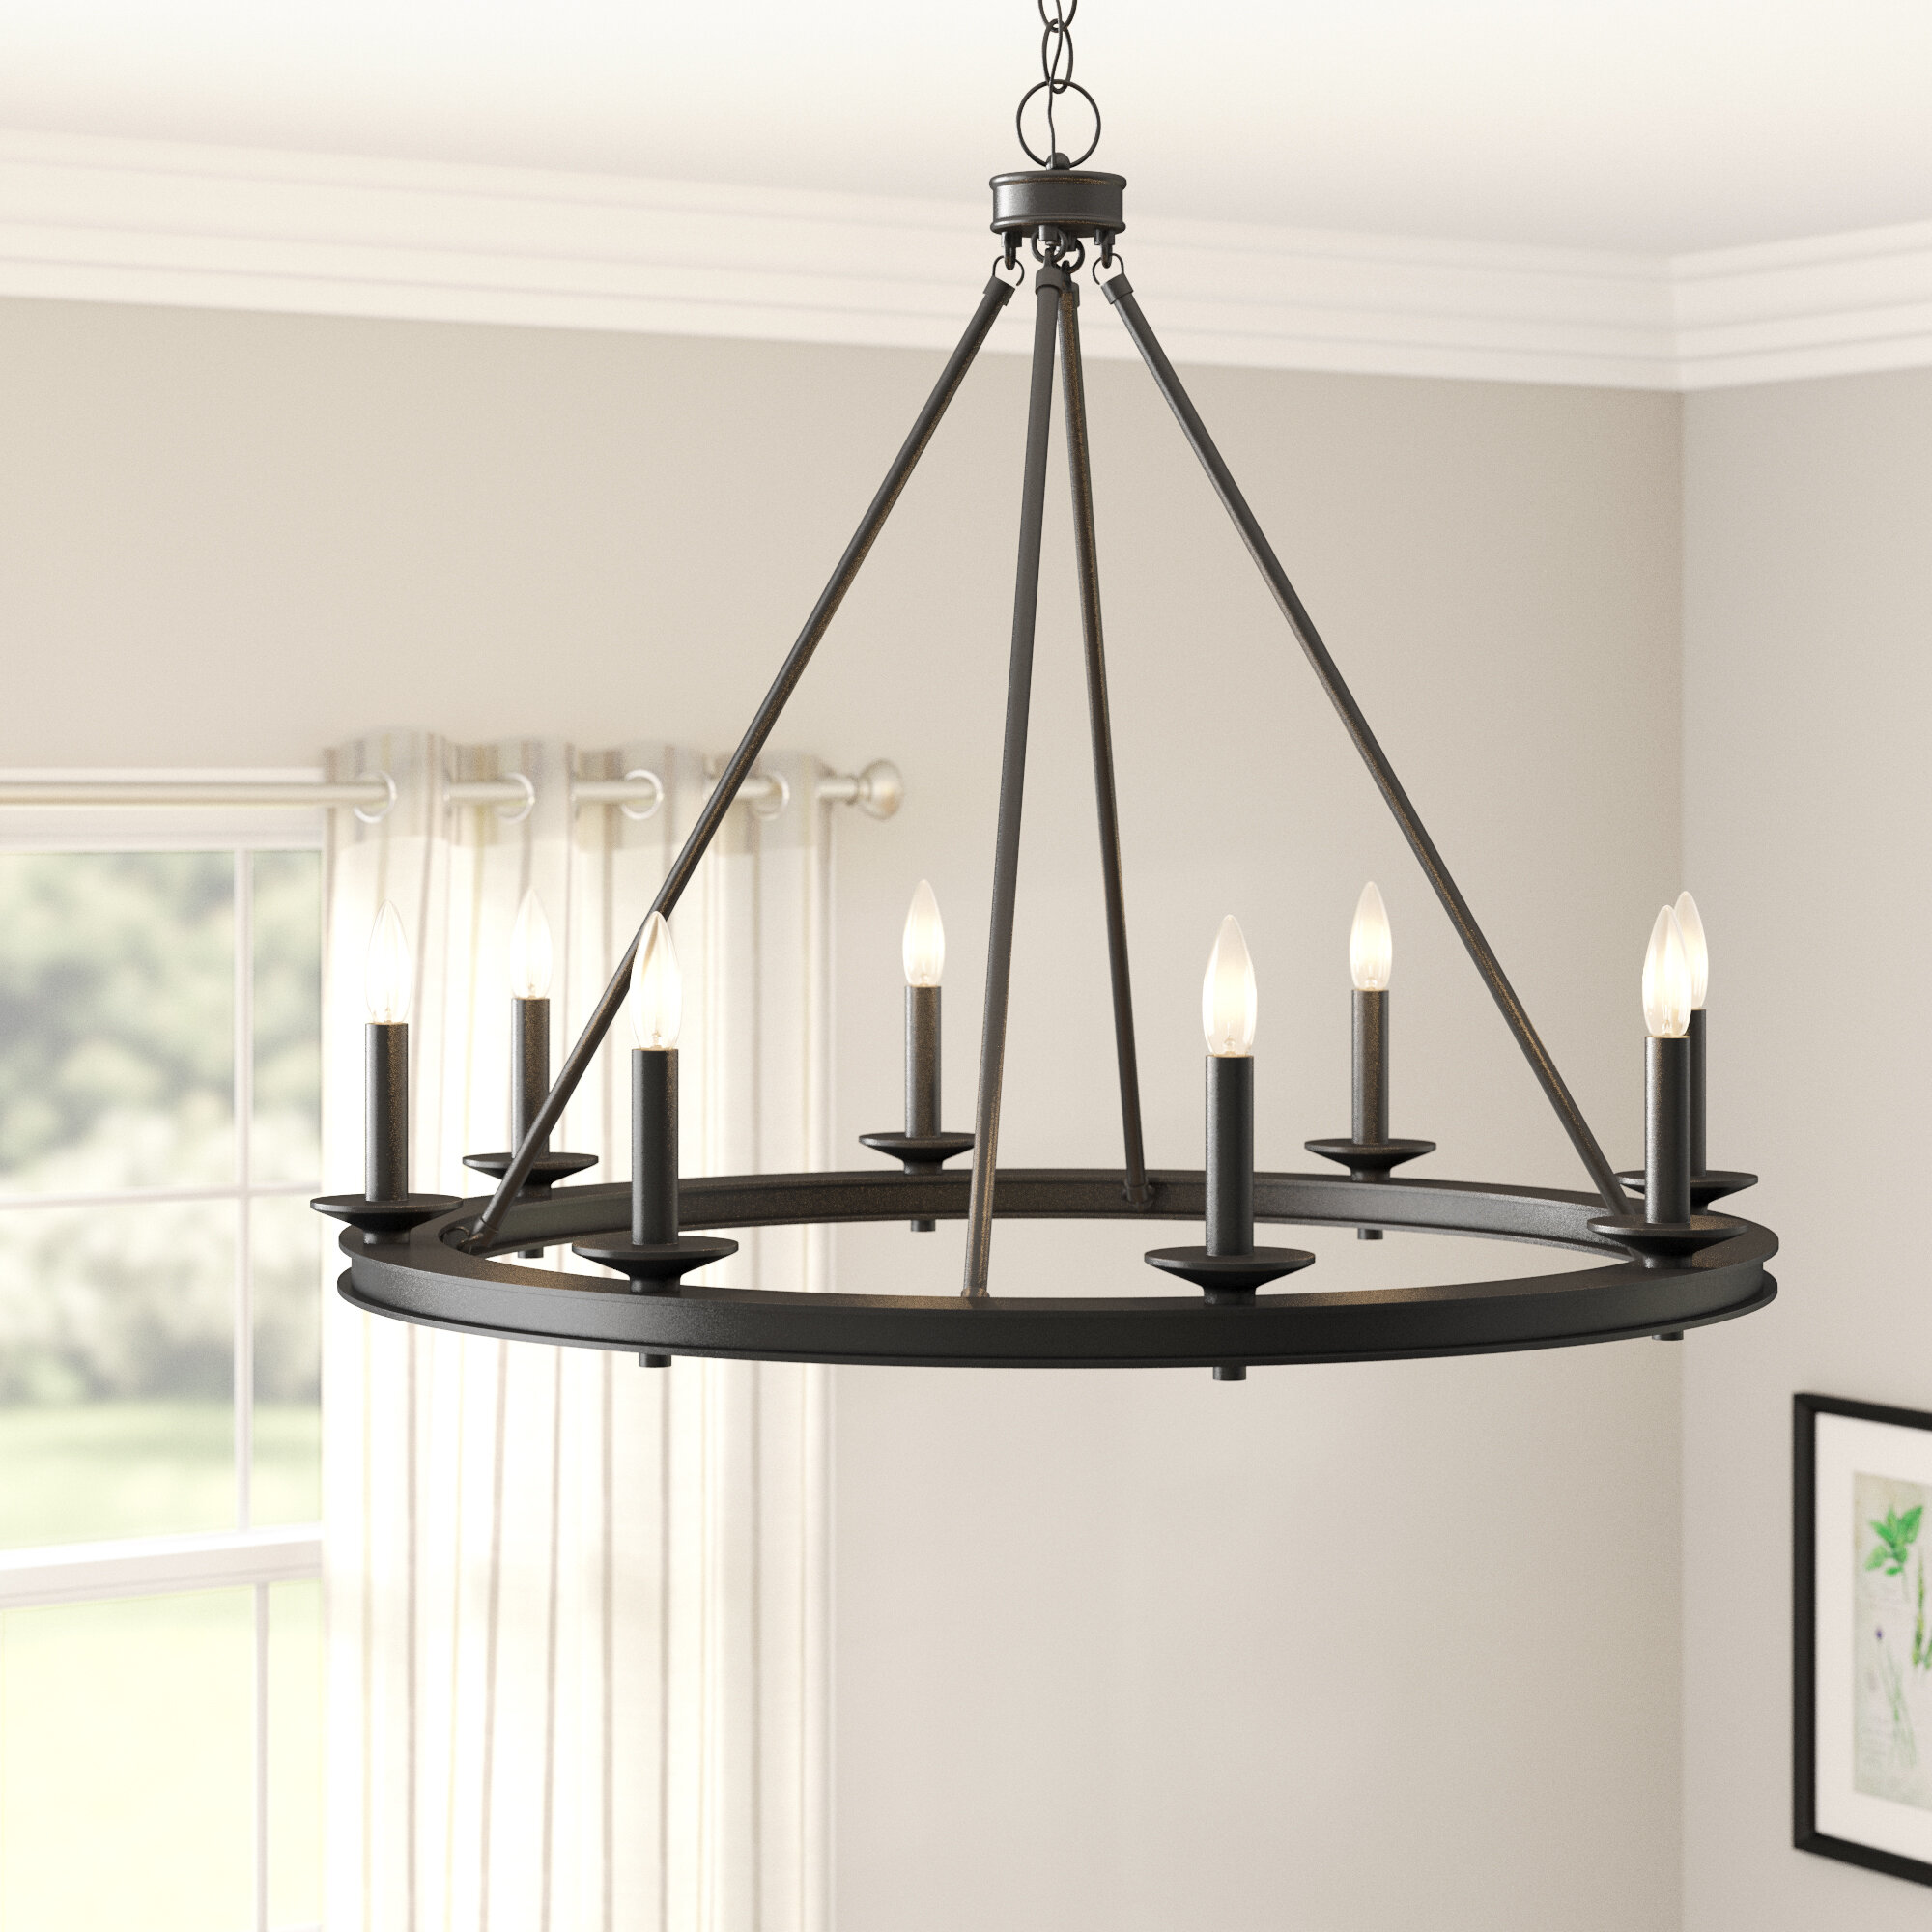 Aramis 8 light wagon wheel chandelier